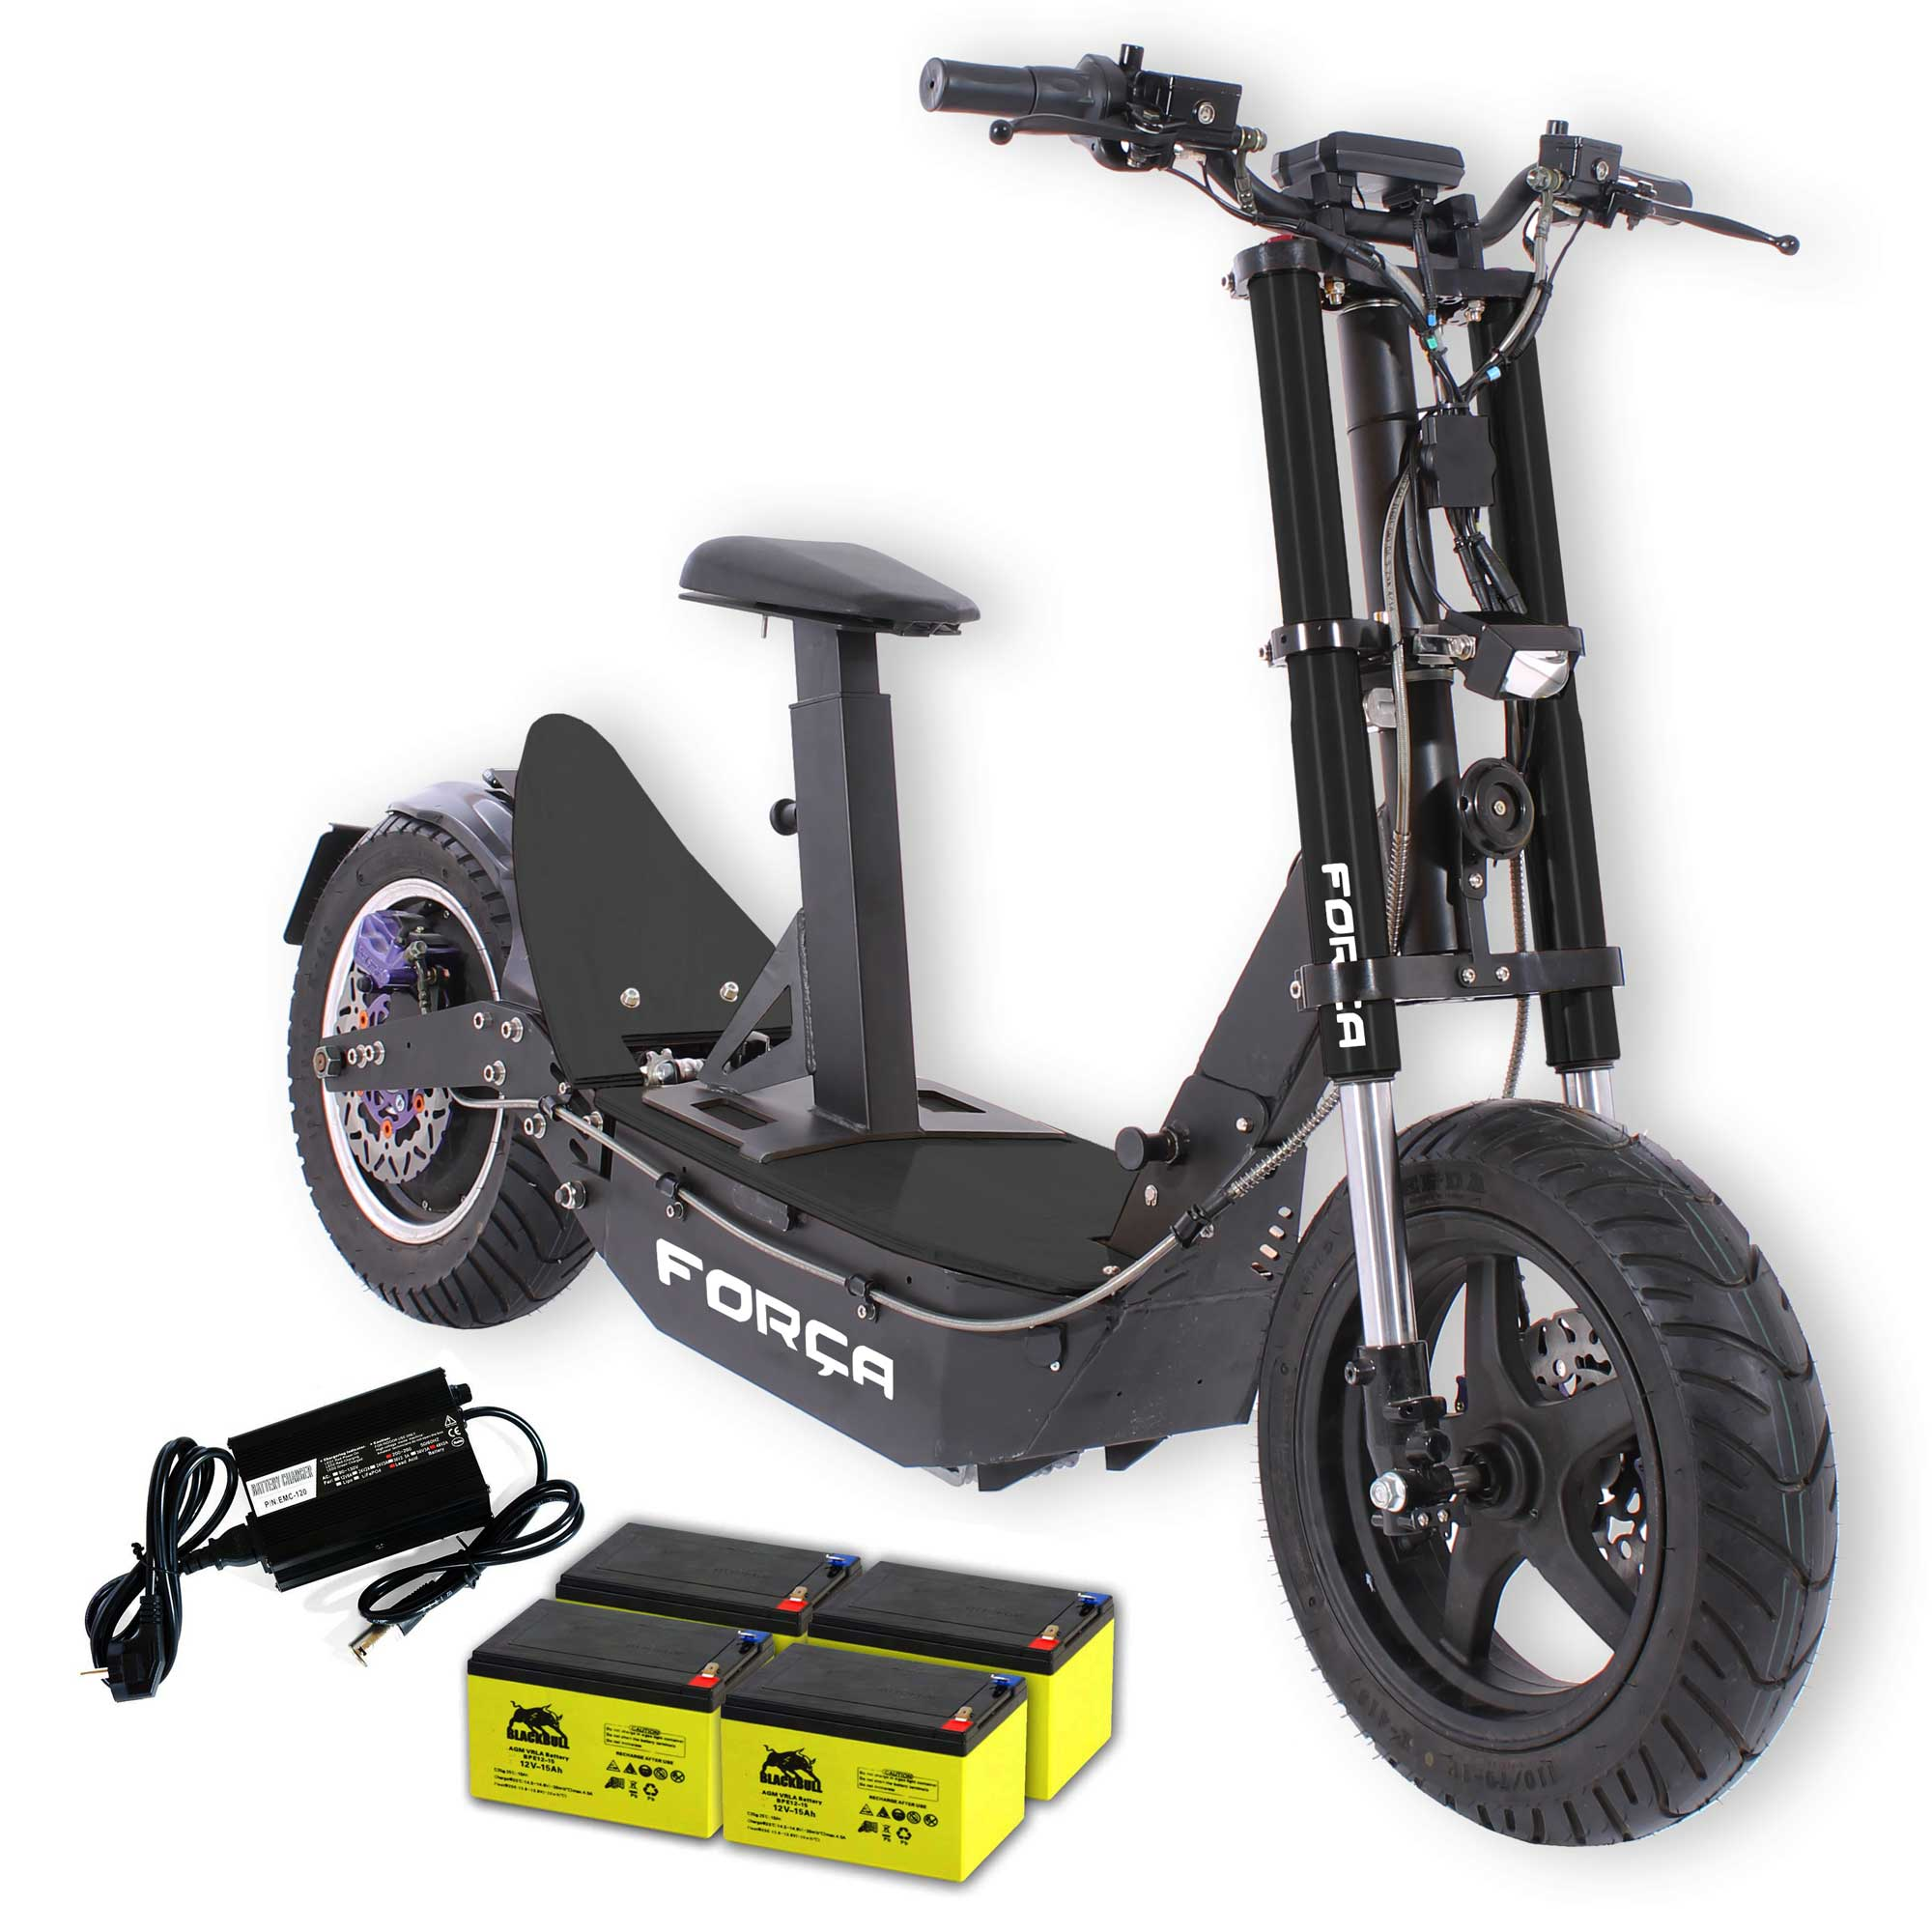 for a bossman xl big wheel e scooter mit 48v 1500 watt. Black Bedroom Furniture Sets. Home Design Ideas